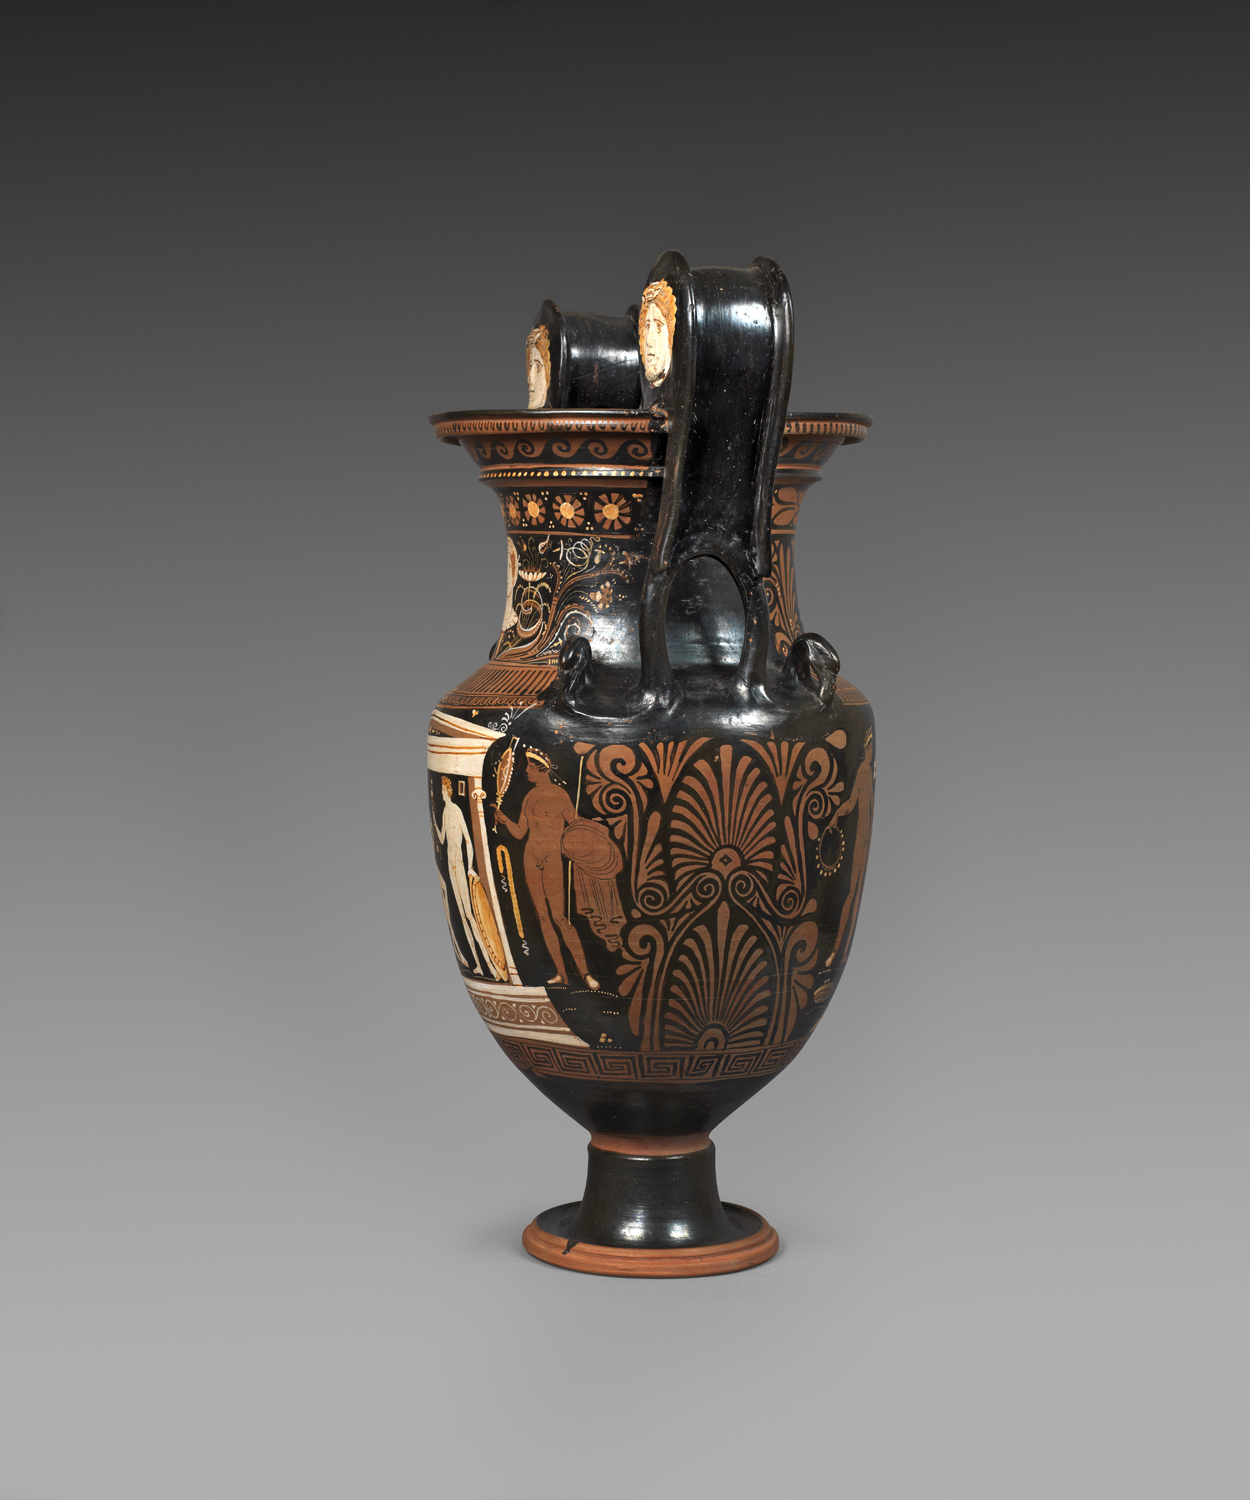 Apulian red-figure volute krater ,Attributed to the painter of Copenhagen 4223, circa 330-320 BC,Terracotta,Height 73.5 cm,Courtesy of Rupert Wace Ancient Art Ltd, London